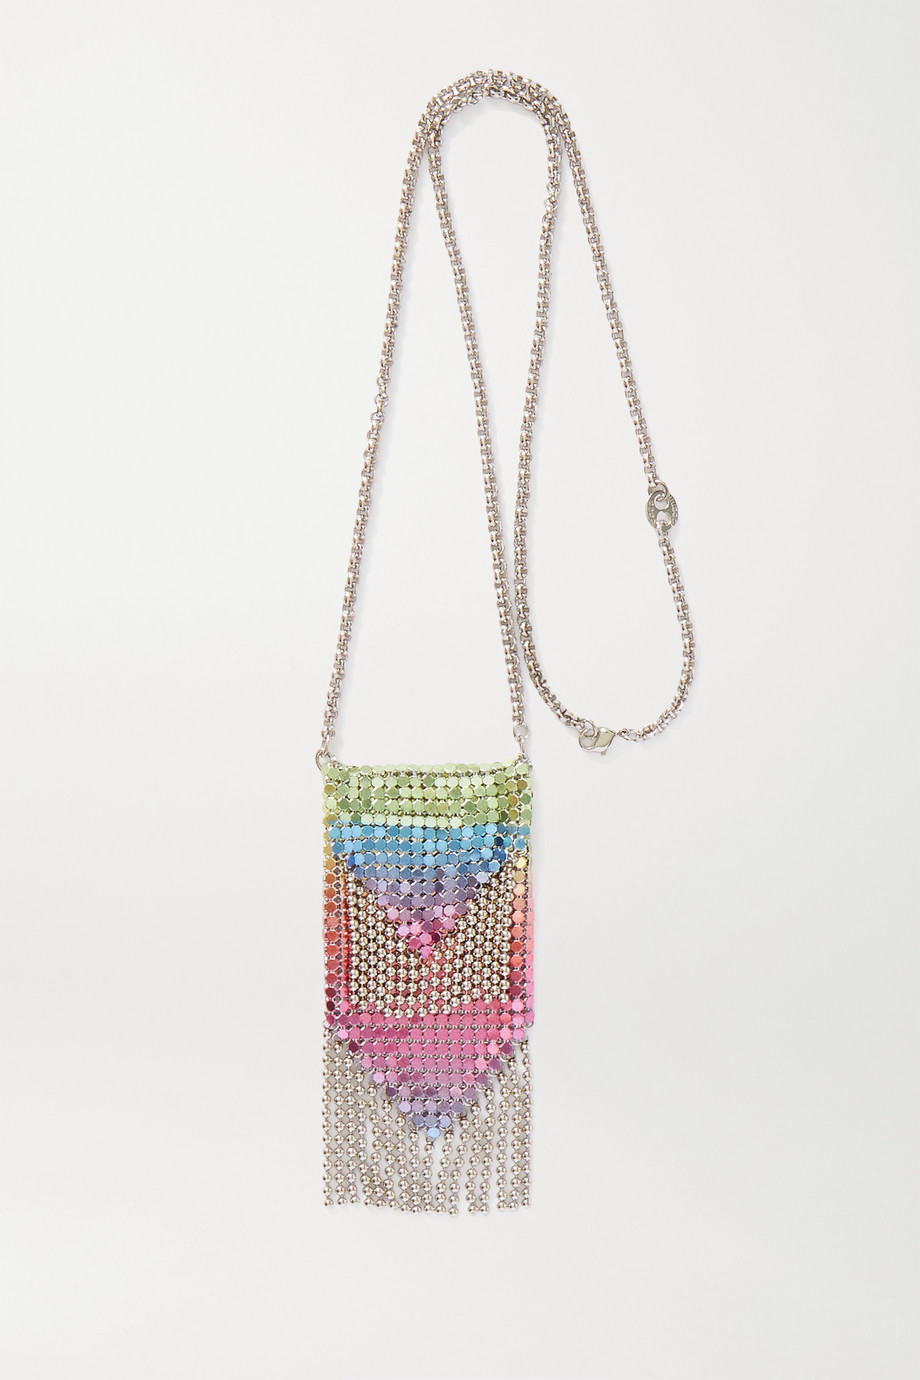 Paco Rabanne Dégradé silver-tone chainmail necklace